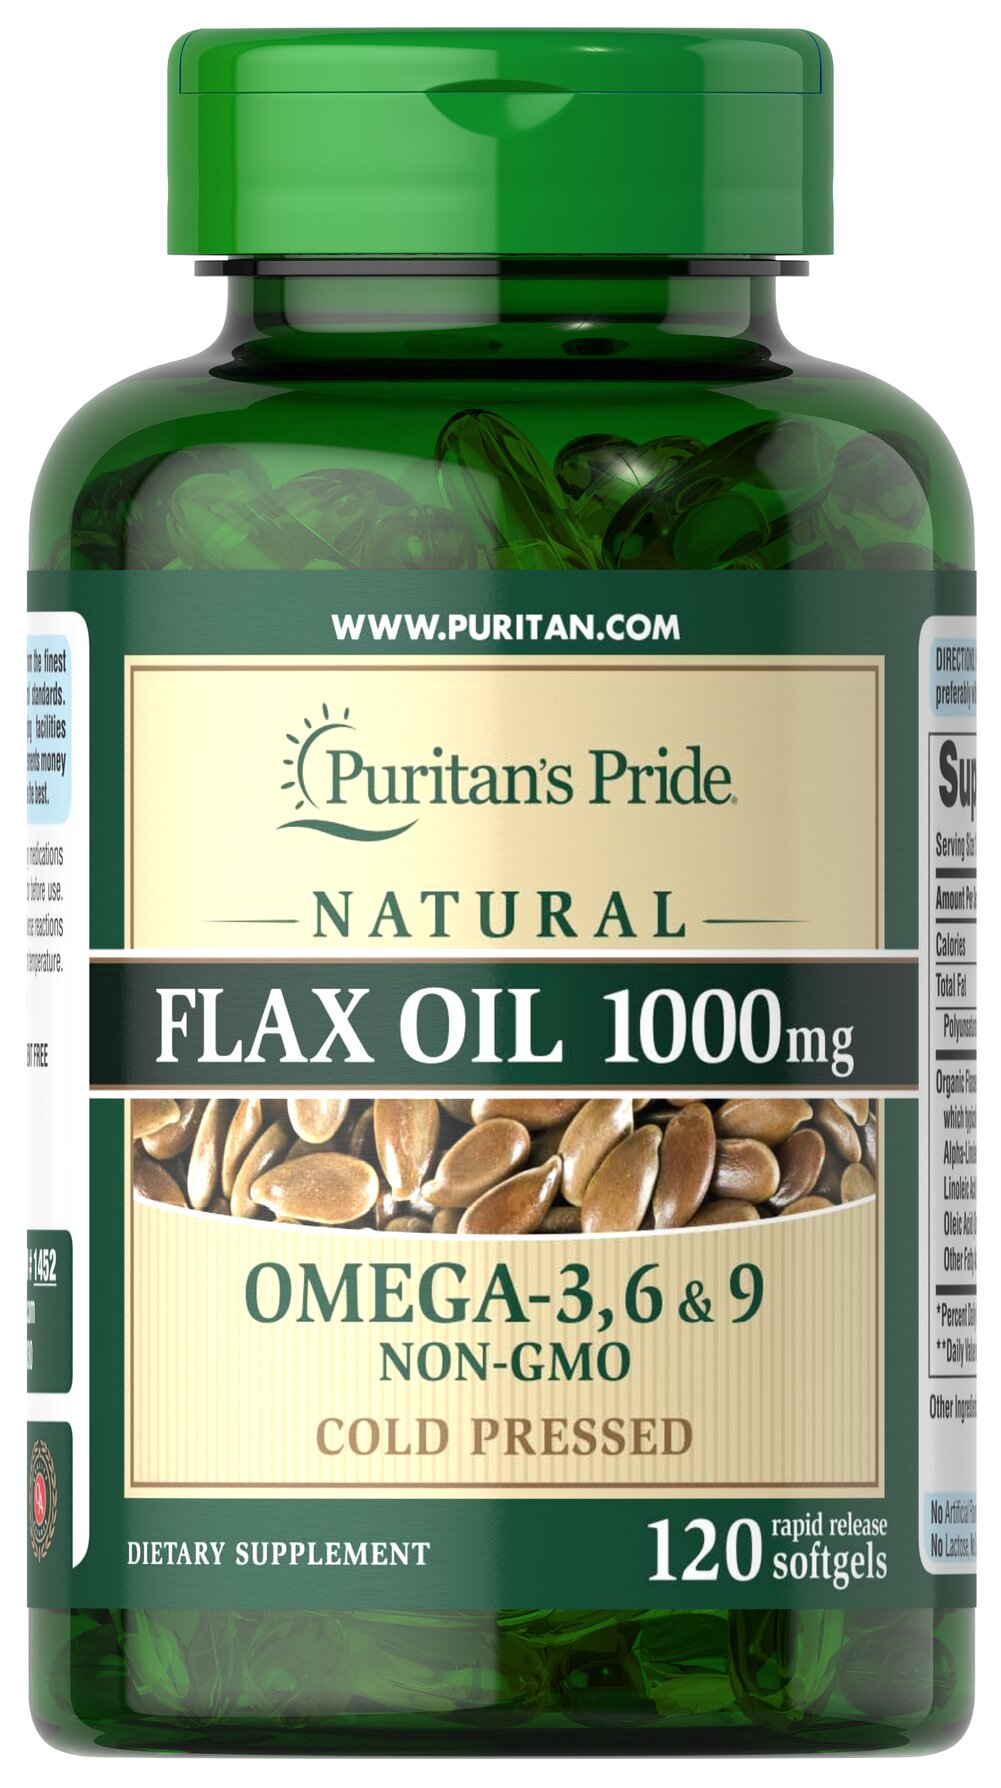 Natural Flax Oil 1000 mg <p><br />Flaxseed oil is a premium source of Alpha Linolenic Acid (Omega-3) and Linoleic Acid (Omega-6), two essential fatty acids that can't be made by the body and must be obtained from diet. Flaxseed oil is one of the most concentrated vegetarian sources of Omega-3 fatty acids found in nature. The Omega-3 fatty acids contribute to heart health and provide an energy source for the body.** Flaxseed oil also supports skin health.** In addition to the bene